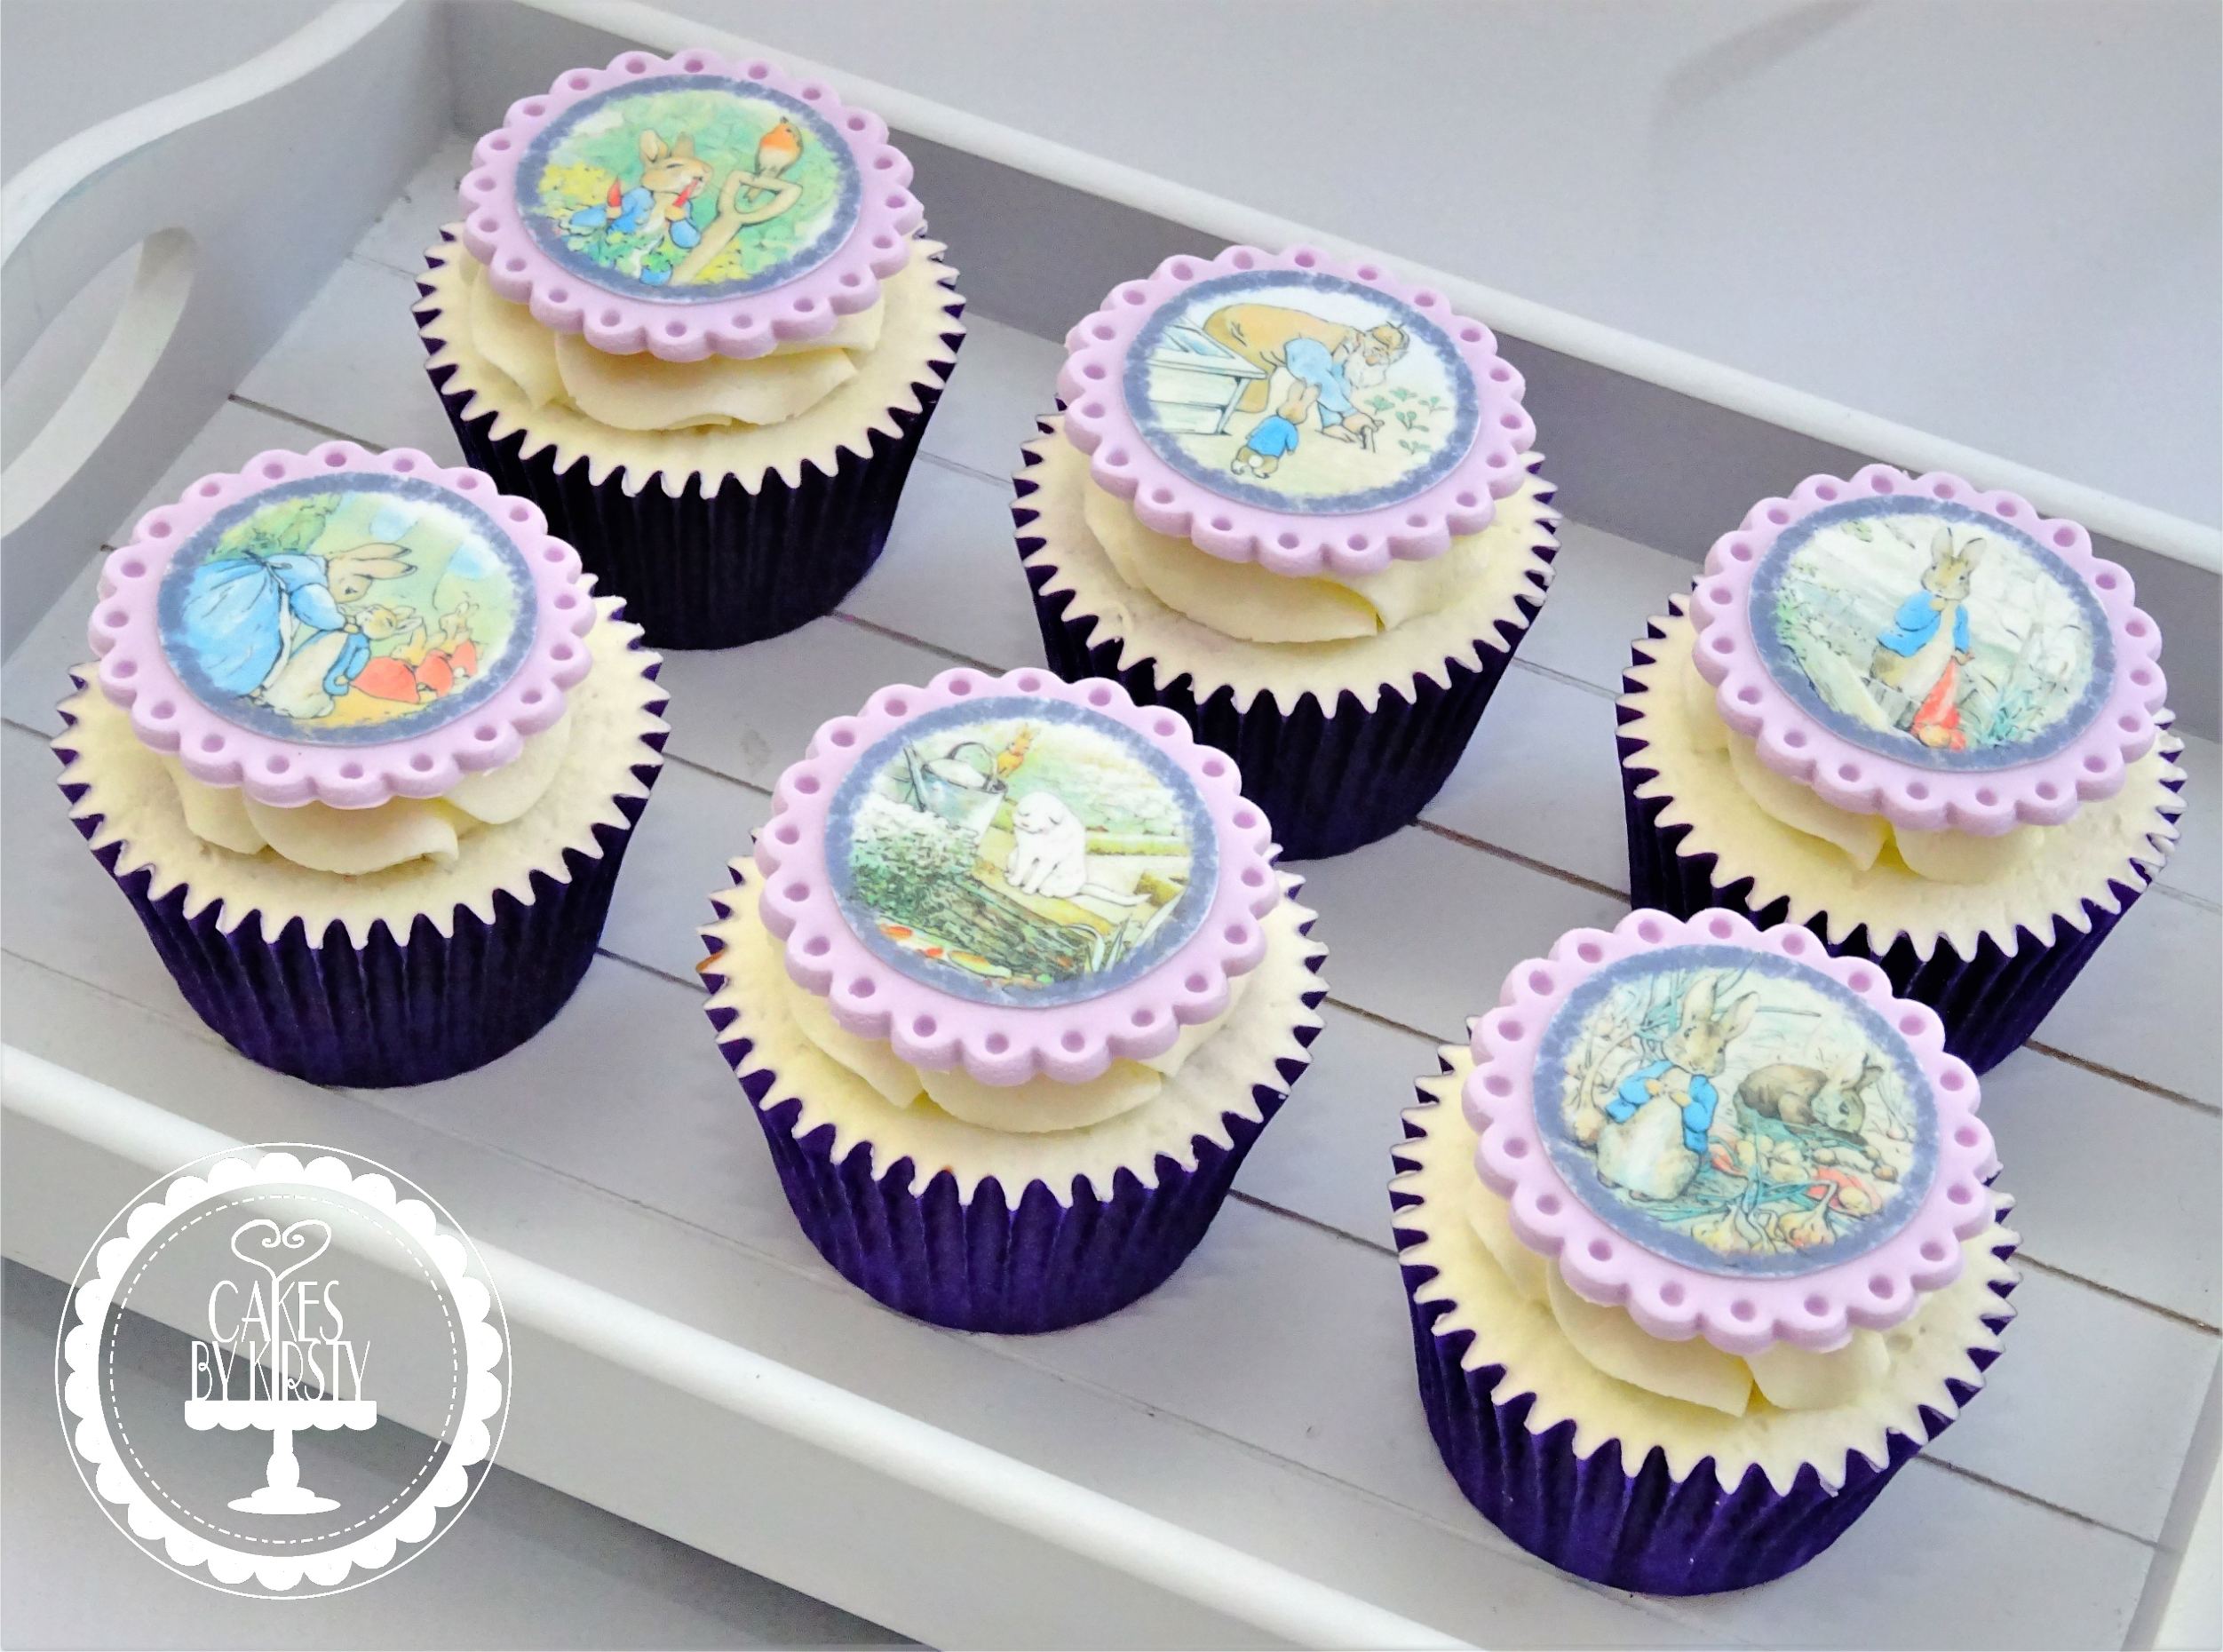 Peter Rabbit Cupcakes